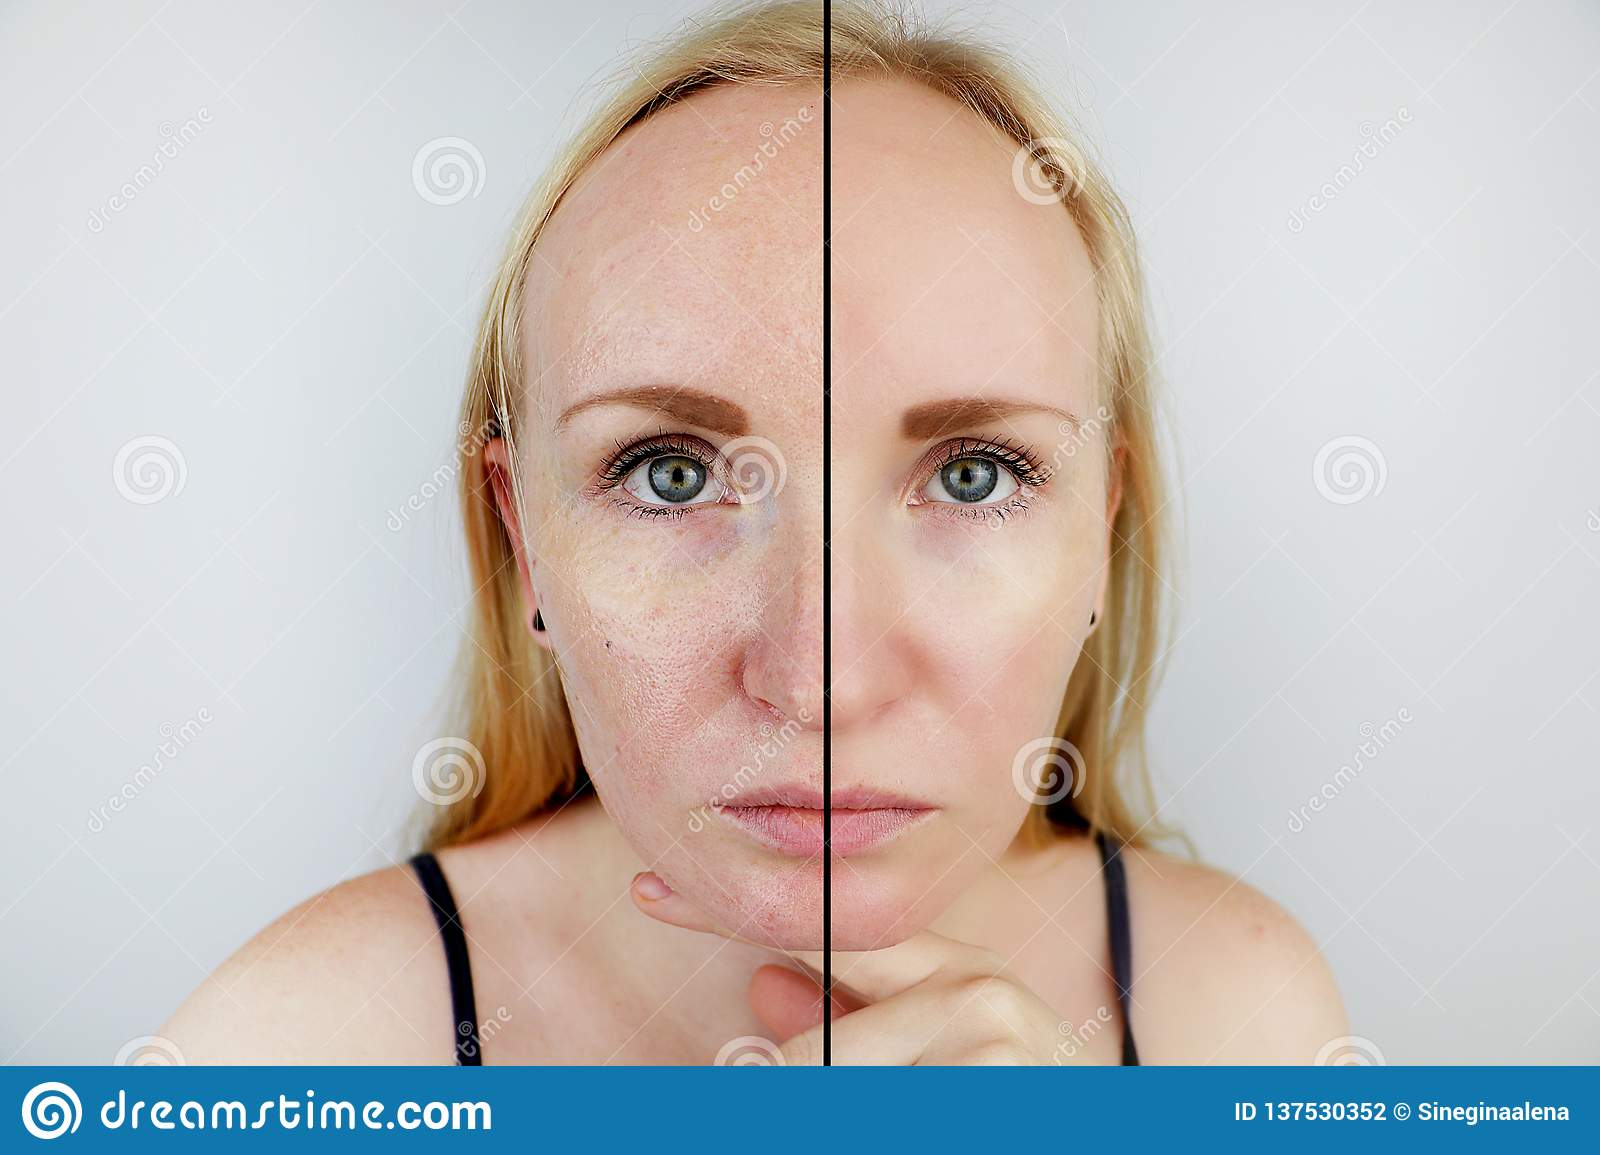 Oily skin and clear skin. Two photos before and after. Portrait of a girl with problem skin